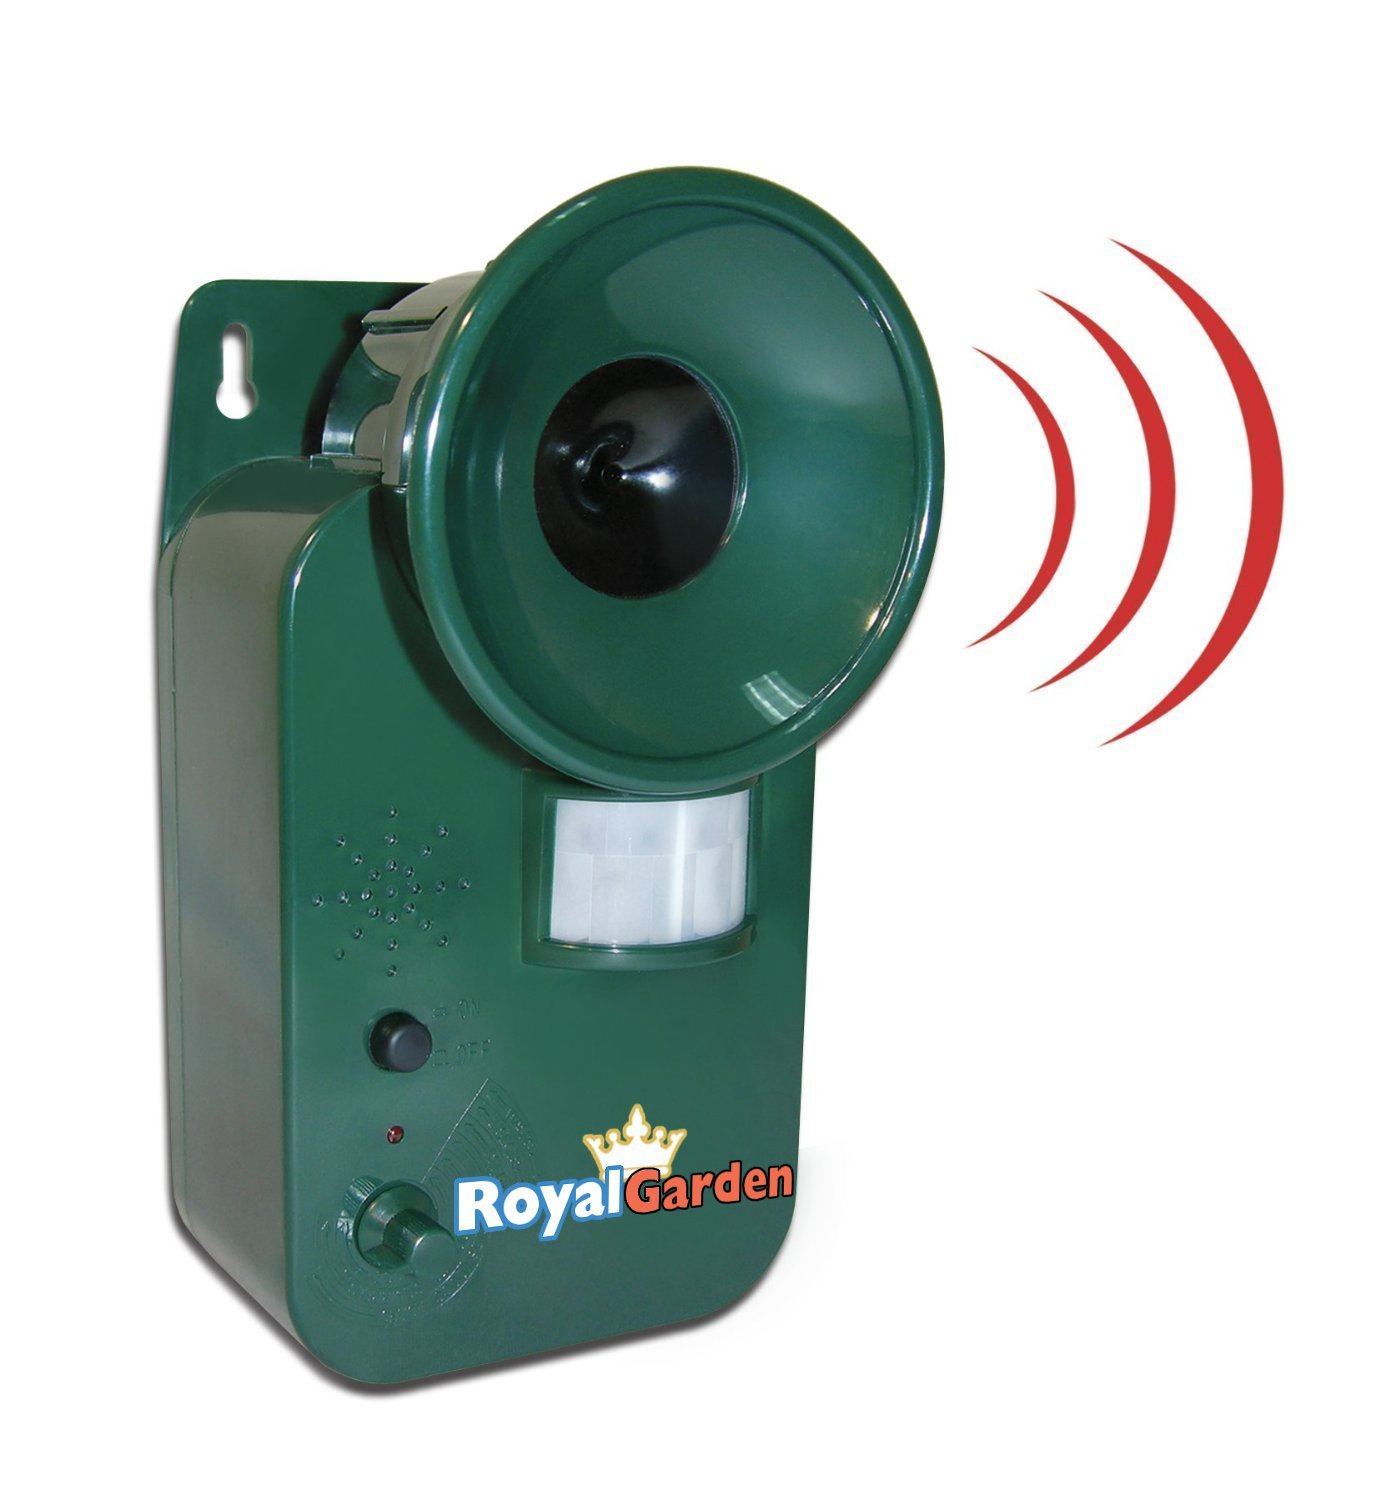 Royal Garden Ultrasonic Pest Repeller